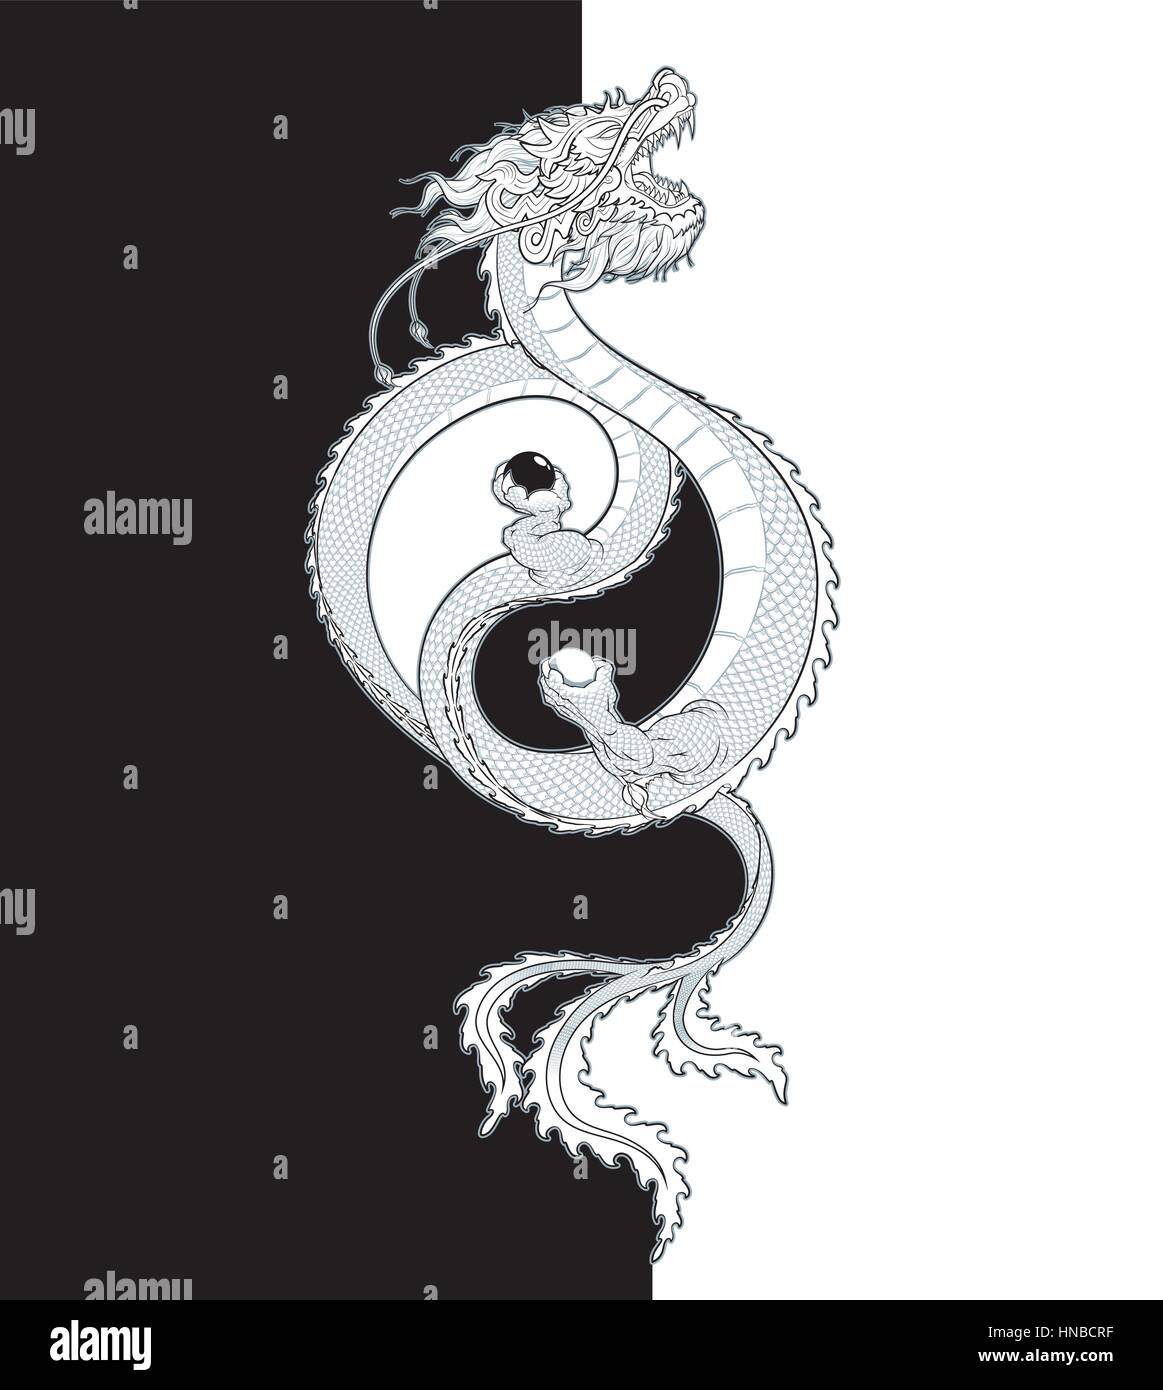 Vector illustration of a flying oriental dragon holding two spheres vector illustration of a flying oriental dragon holding two spheres shaping the yin yang symbol all elements neatly on layers and groups buycottarizona Choice Image